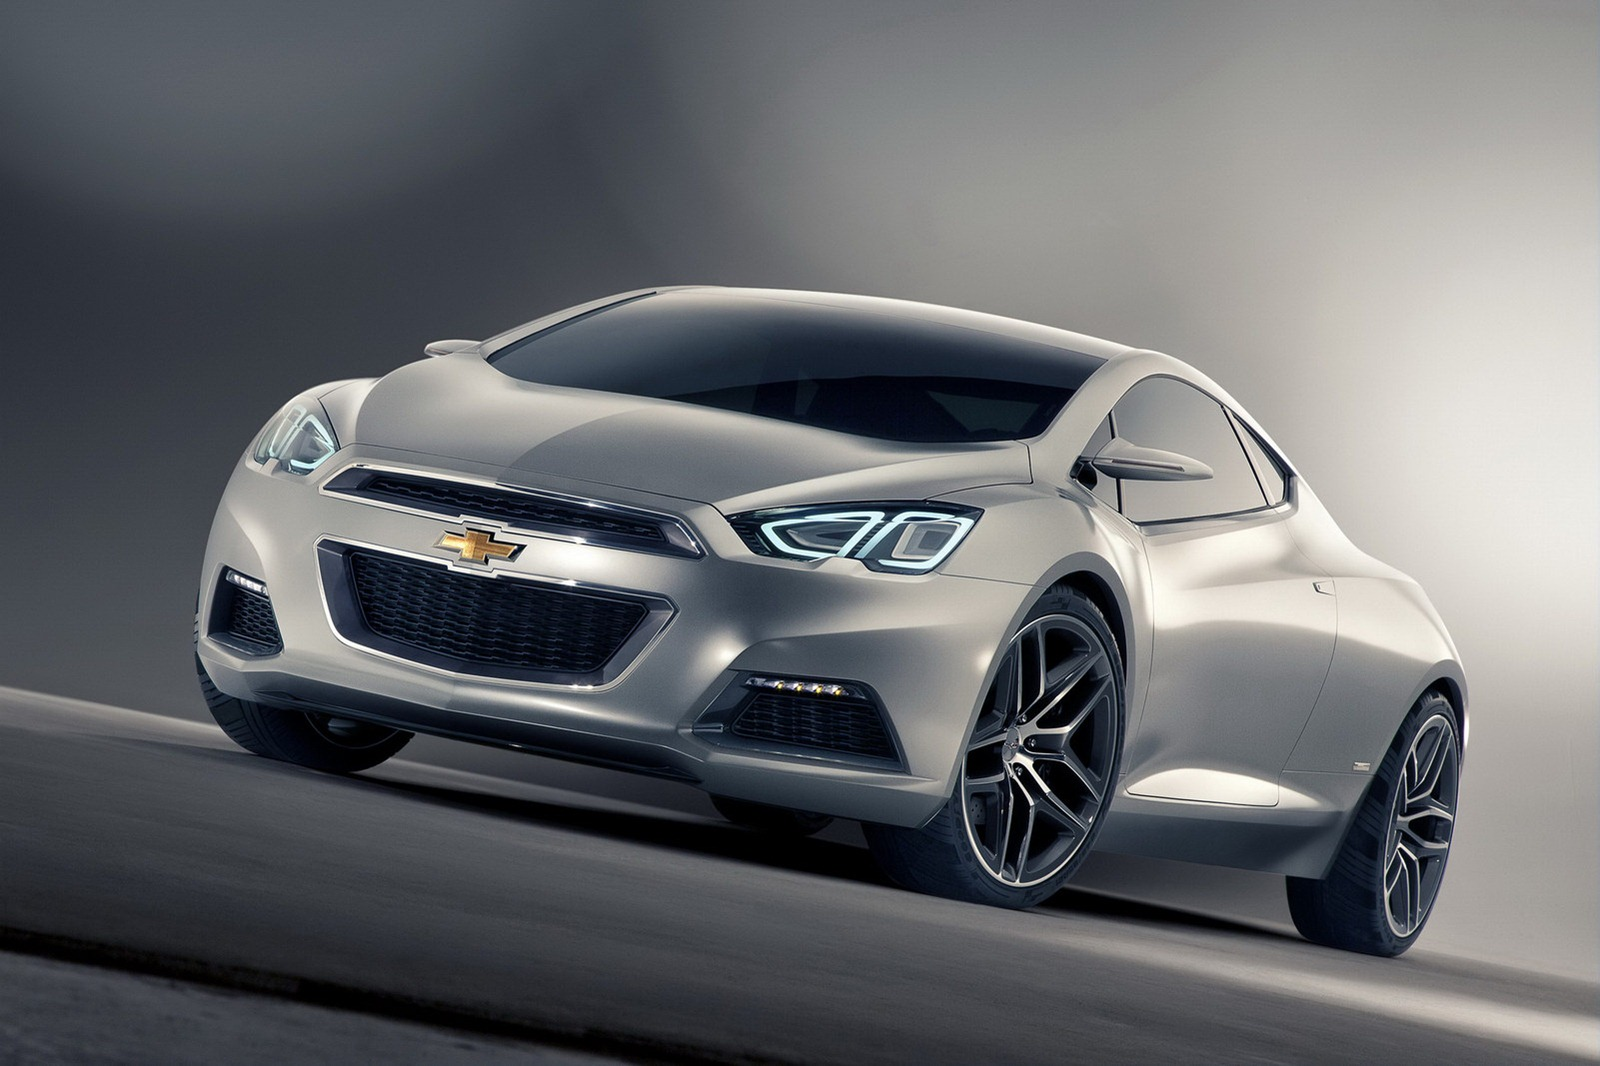 All Chevy chevy concepts : Chevy Code 130R and Tru 140S Concepts Coming to Geneva - autoevolution